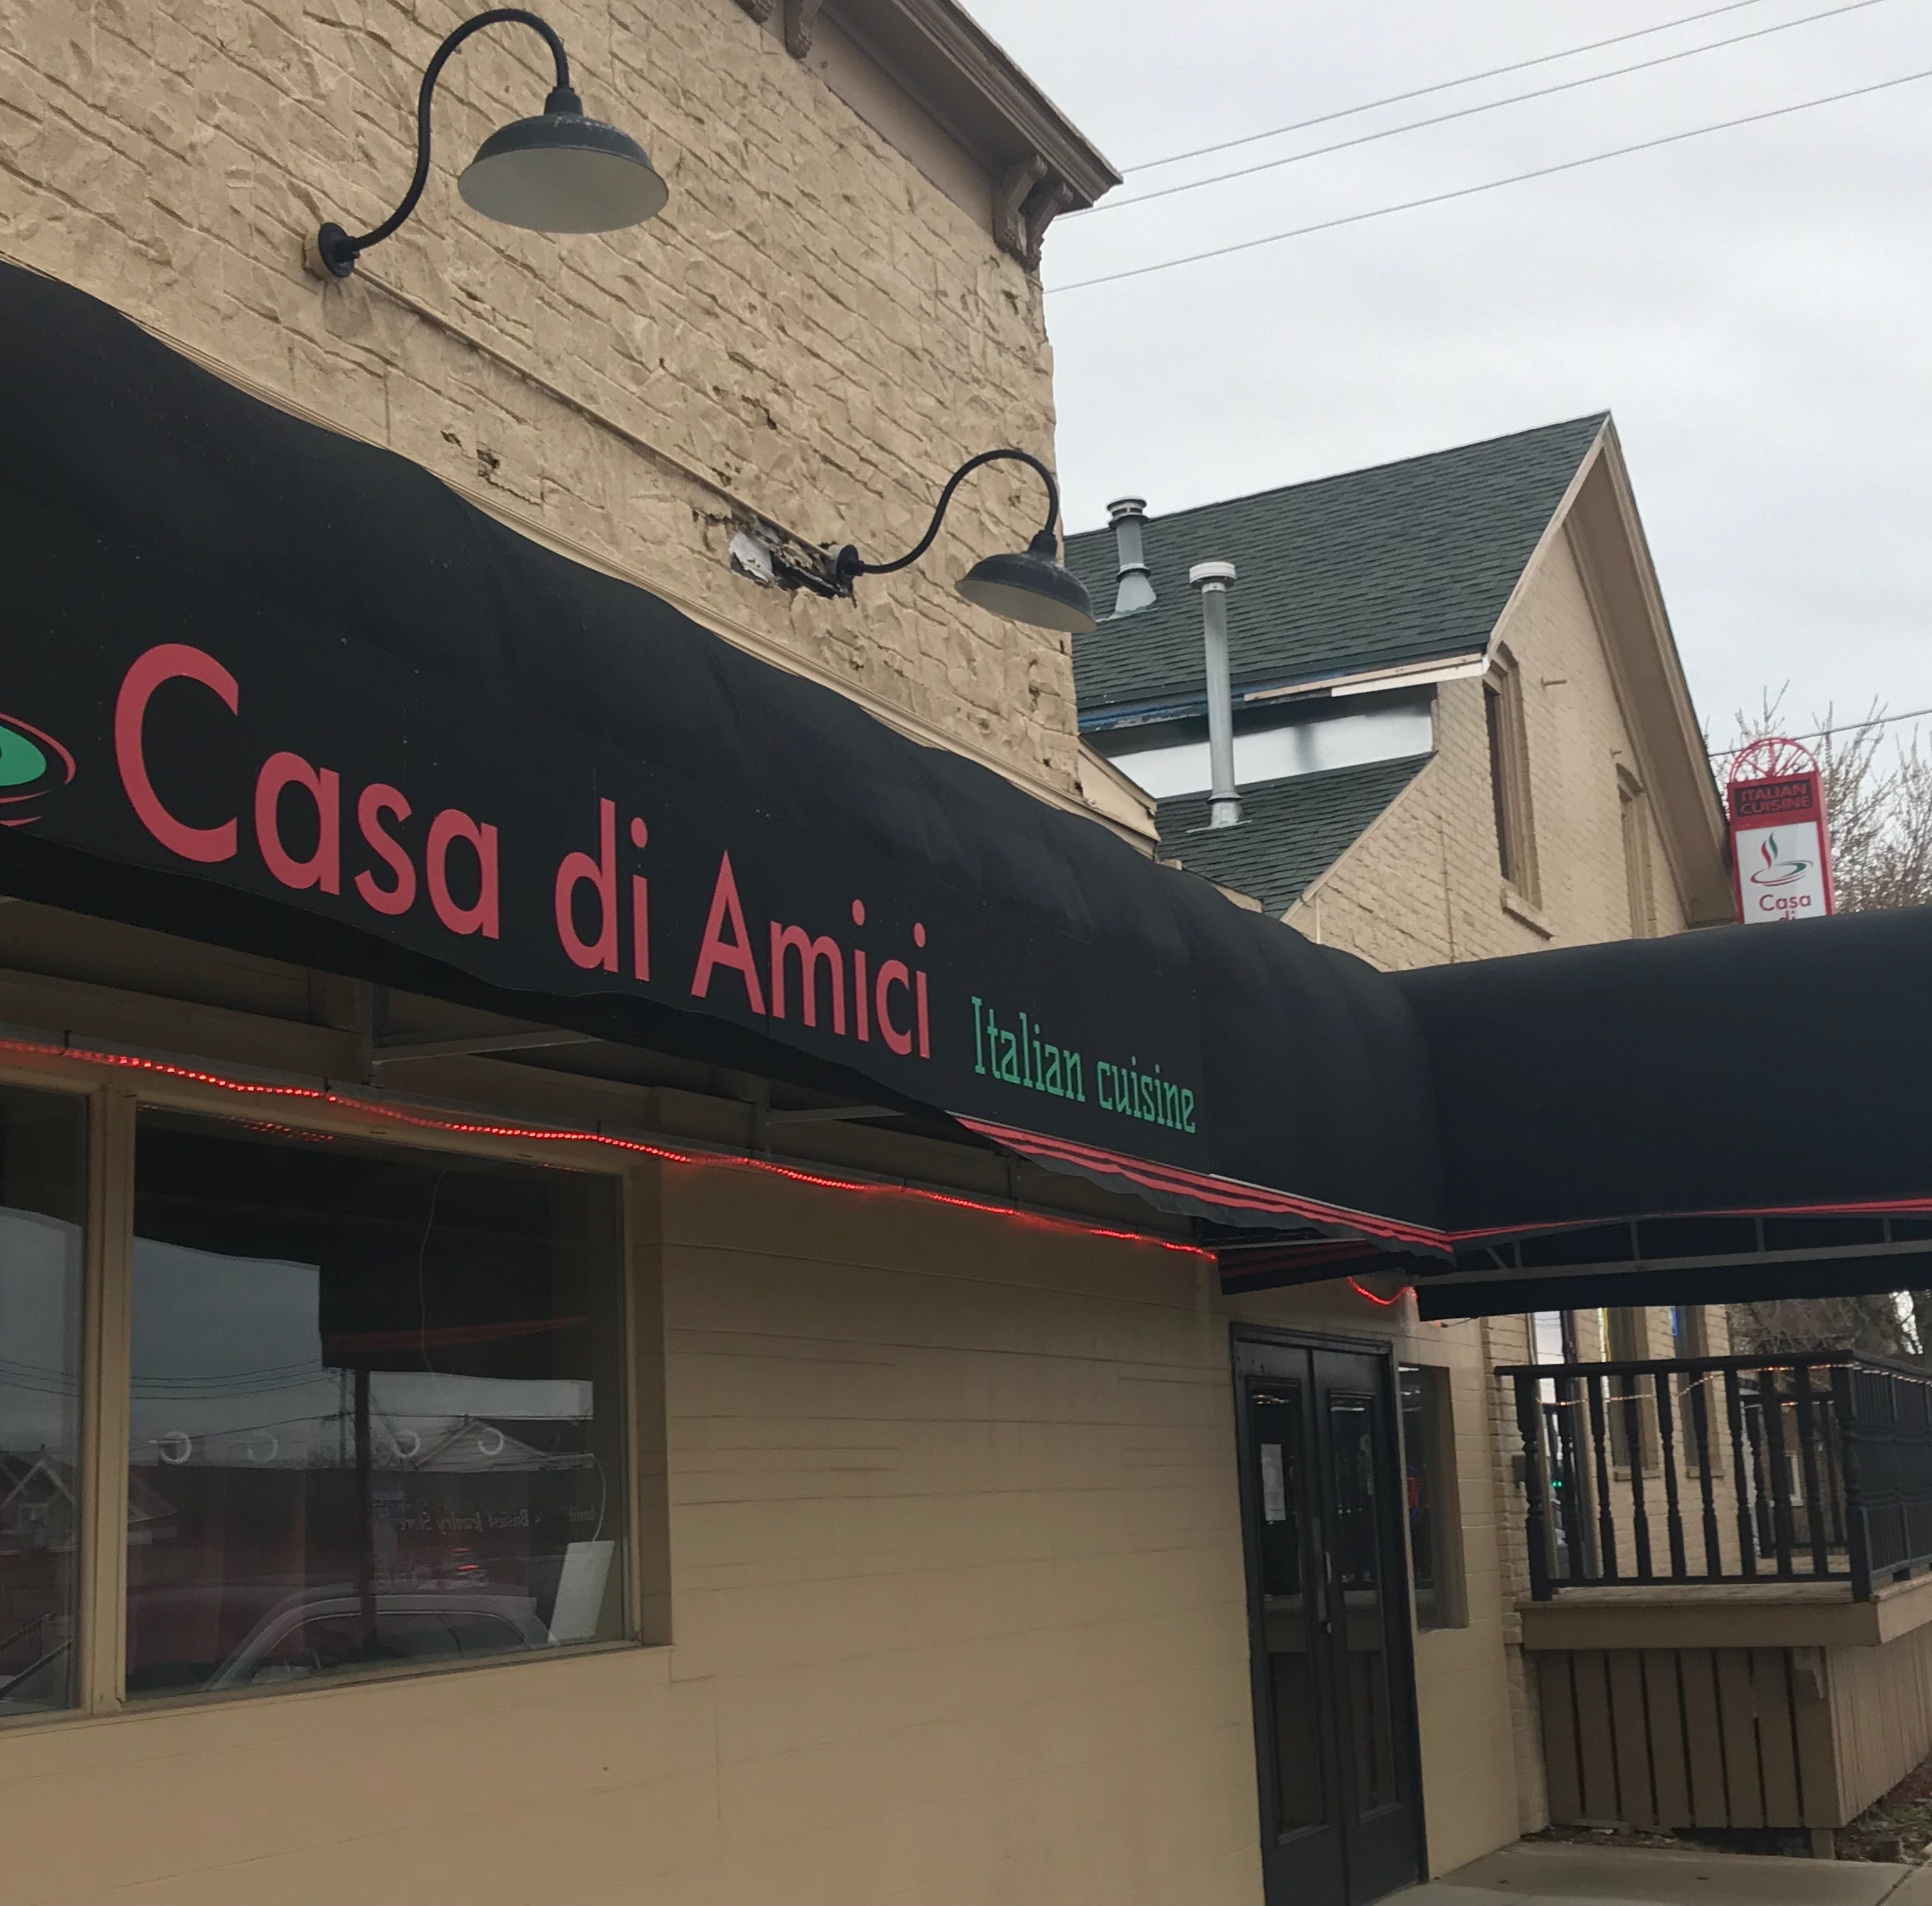 Manitowoc's Casa di Amici serves up Italian goodness: Calamari, pasta and chicken parmesan